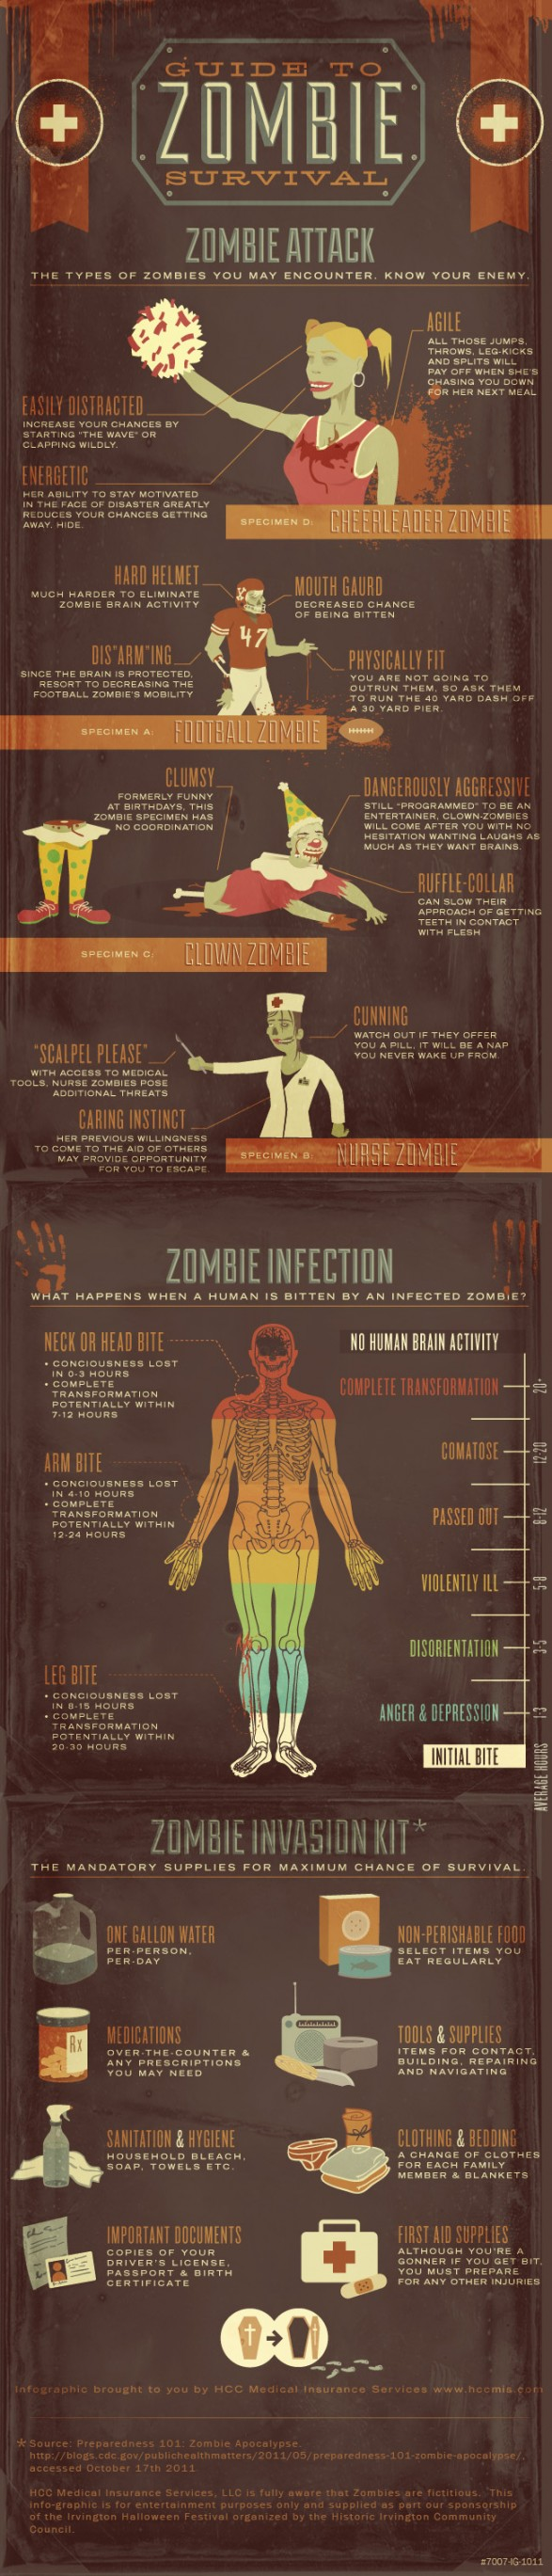 Guide to Zombie Survival Infographic